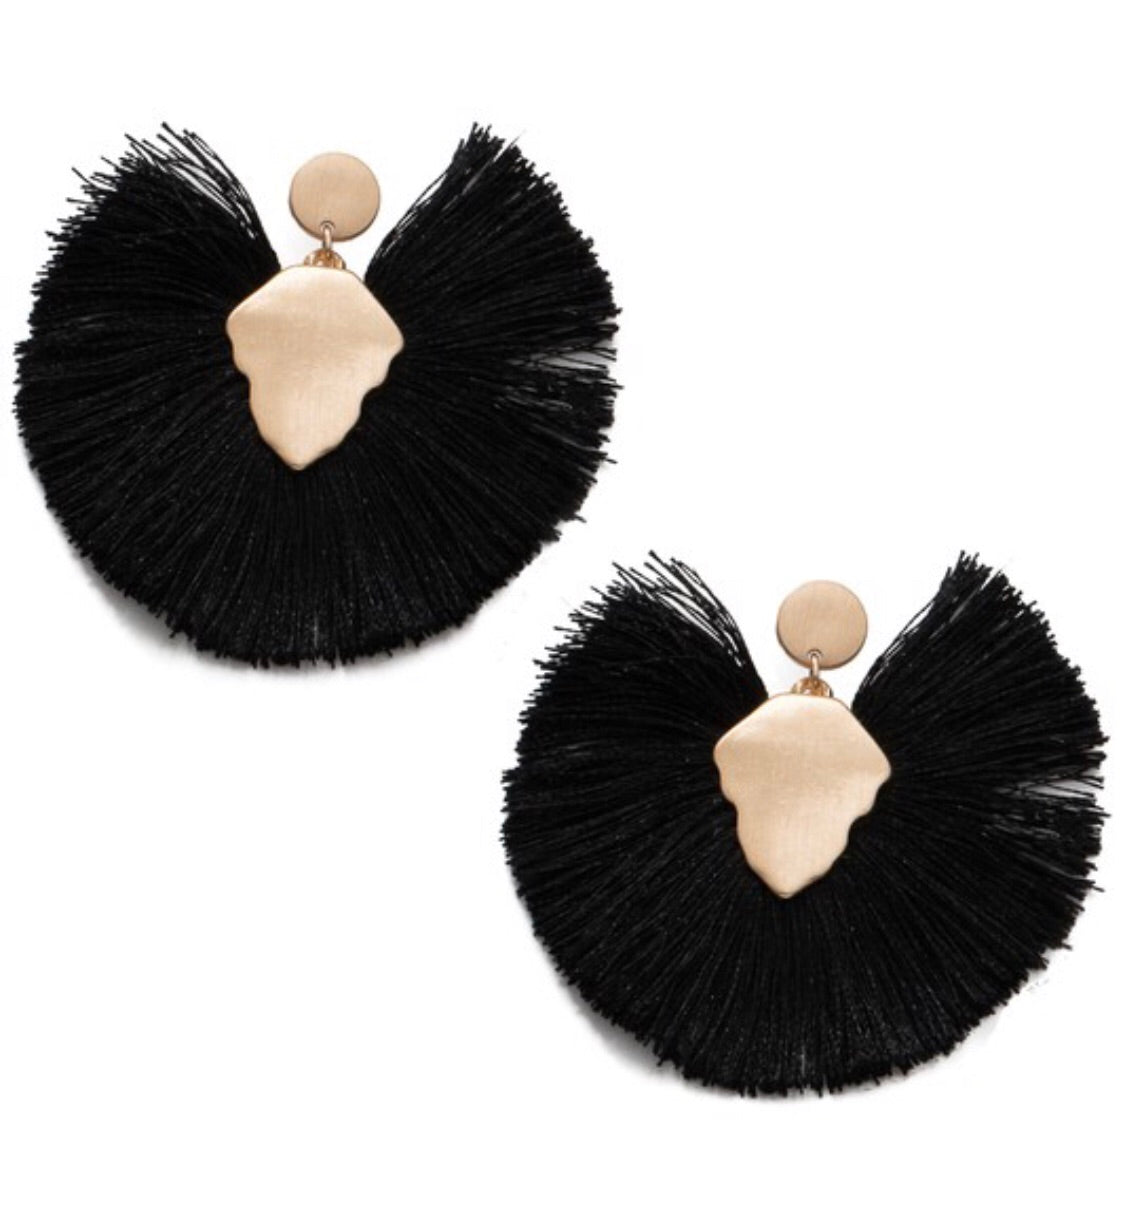 Request More Earrings in Black